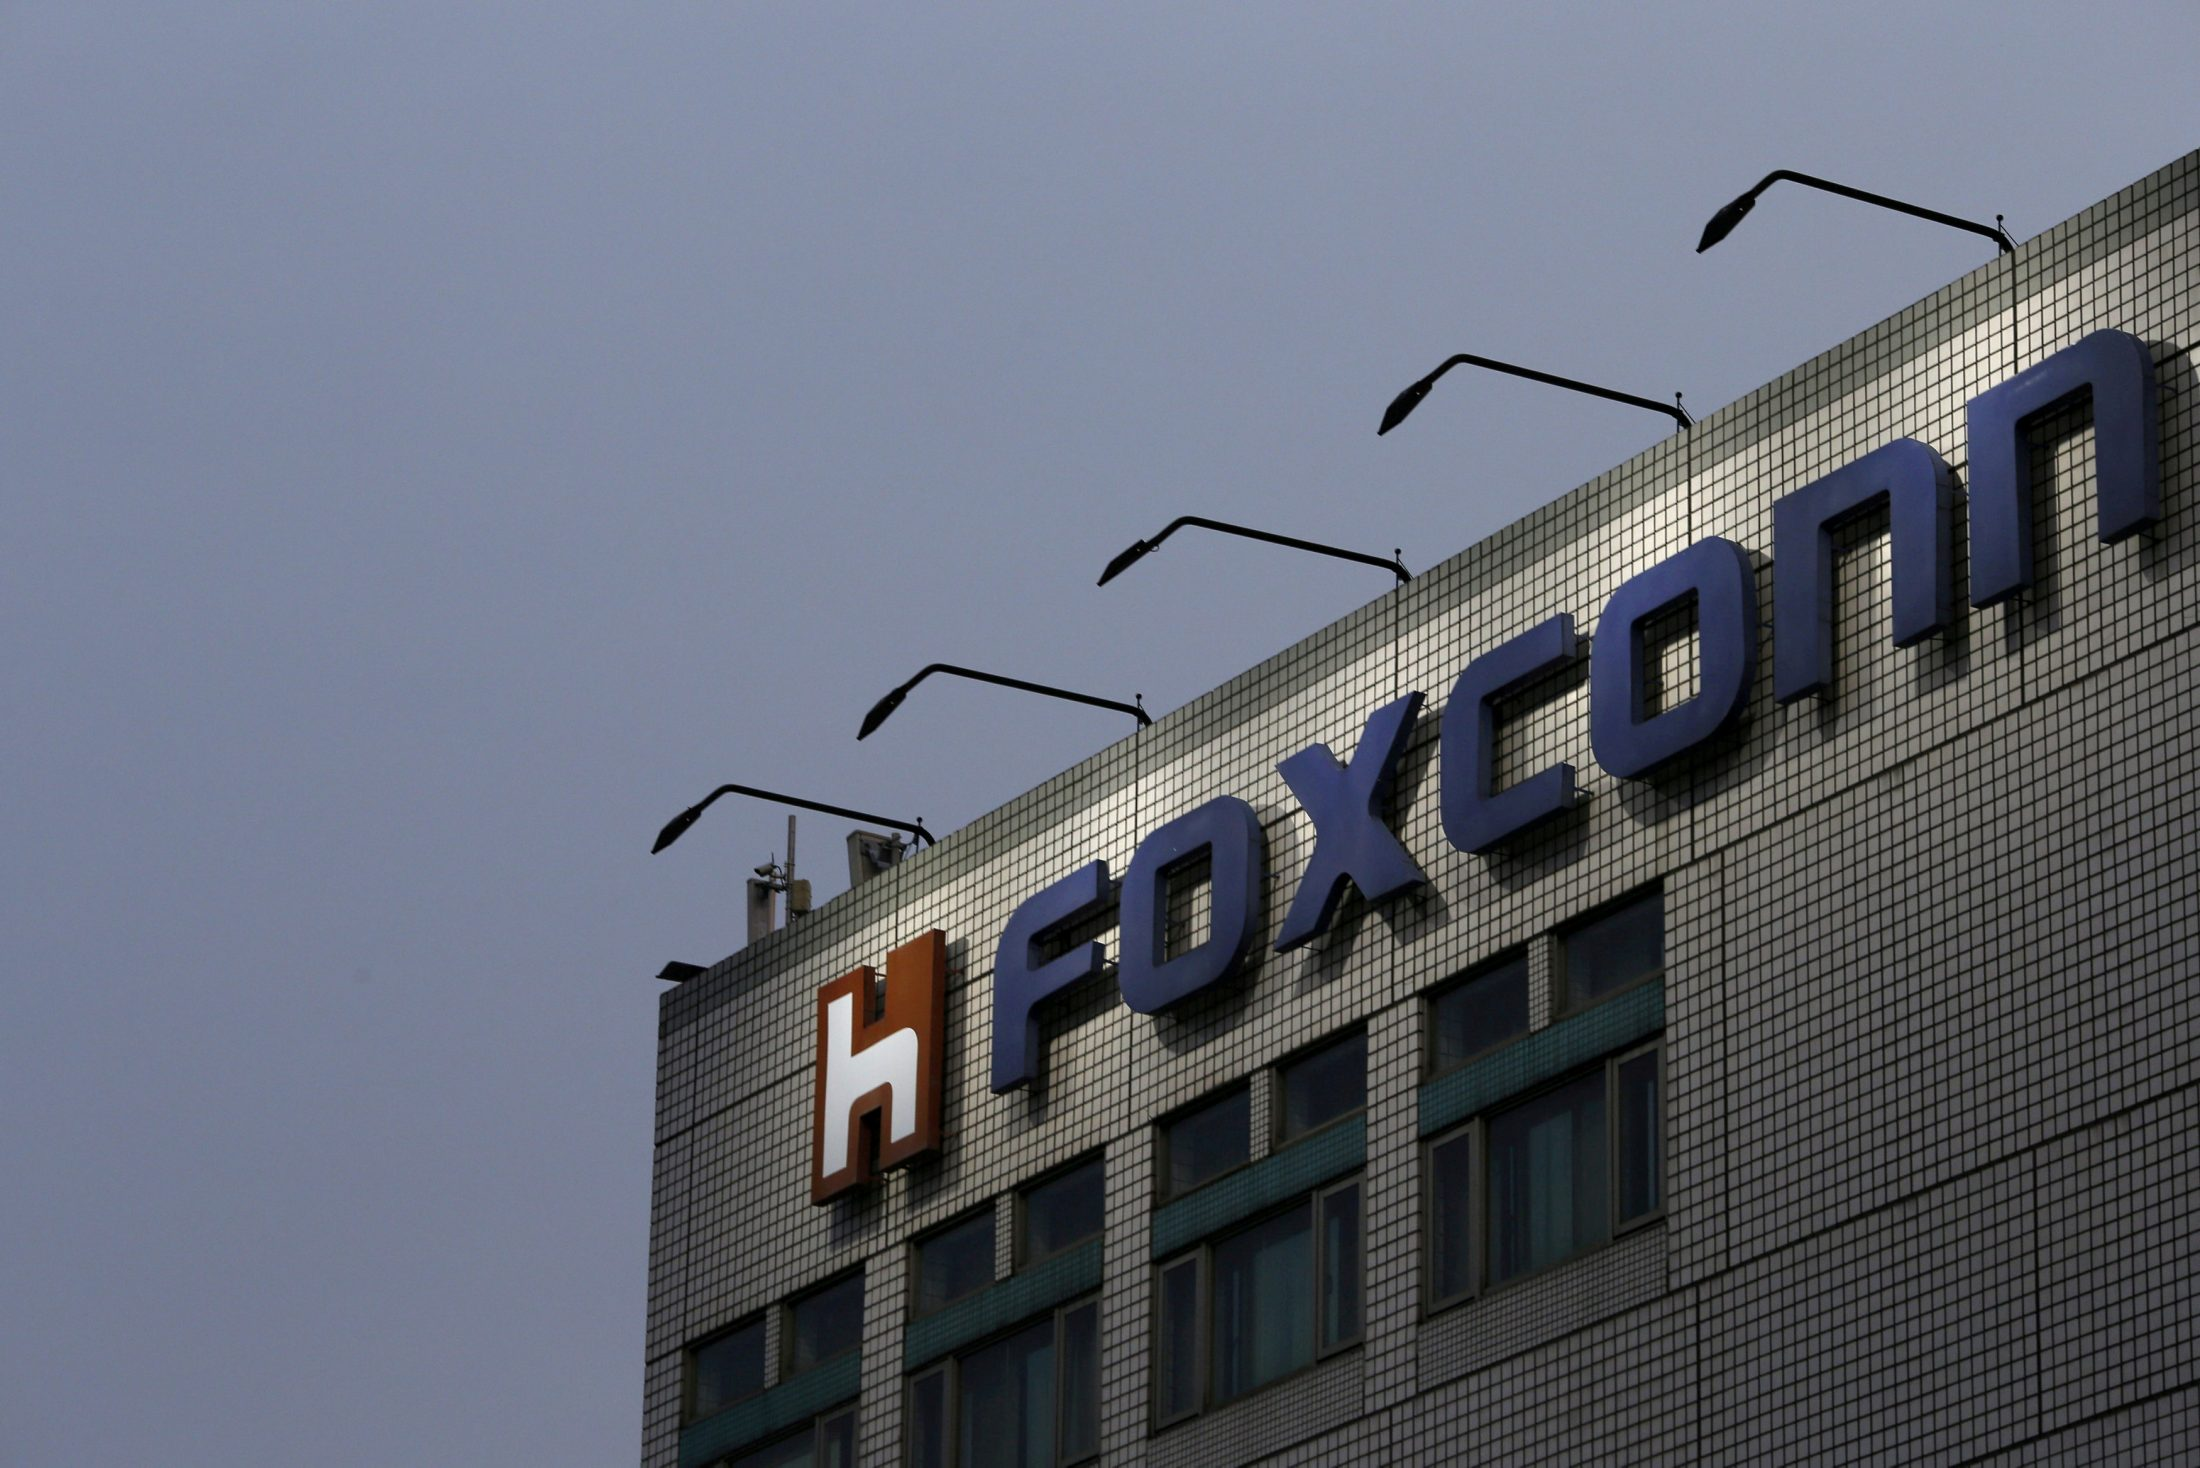 The logo of Foxconn, the trading name of Hon Hai Precision Industry, is seen on top of the company's headquarters in New Taipei City, Taiwan. Photo by Tyrone Siu/Reuters